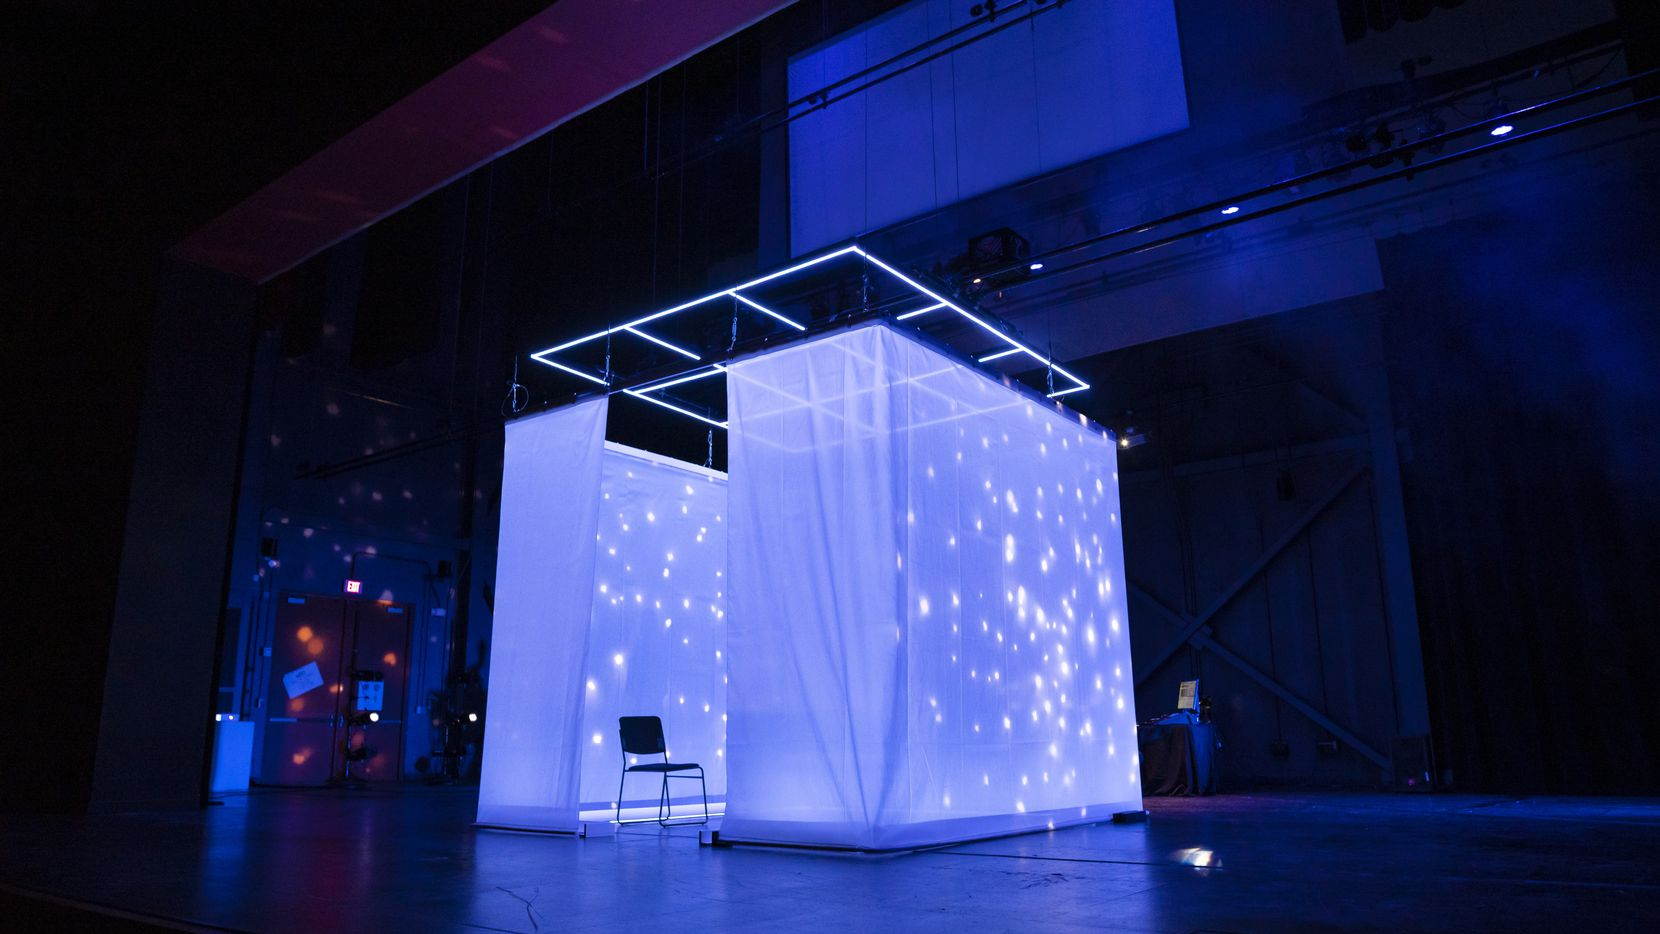 """A curtained-off square serves as projection screen and audience pod in """"The Cube"""" at the Latino Cultural Center."""